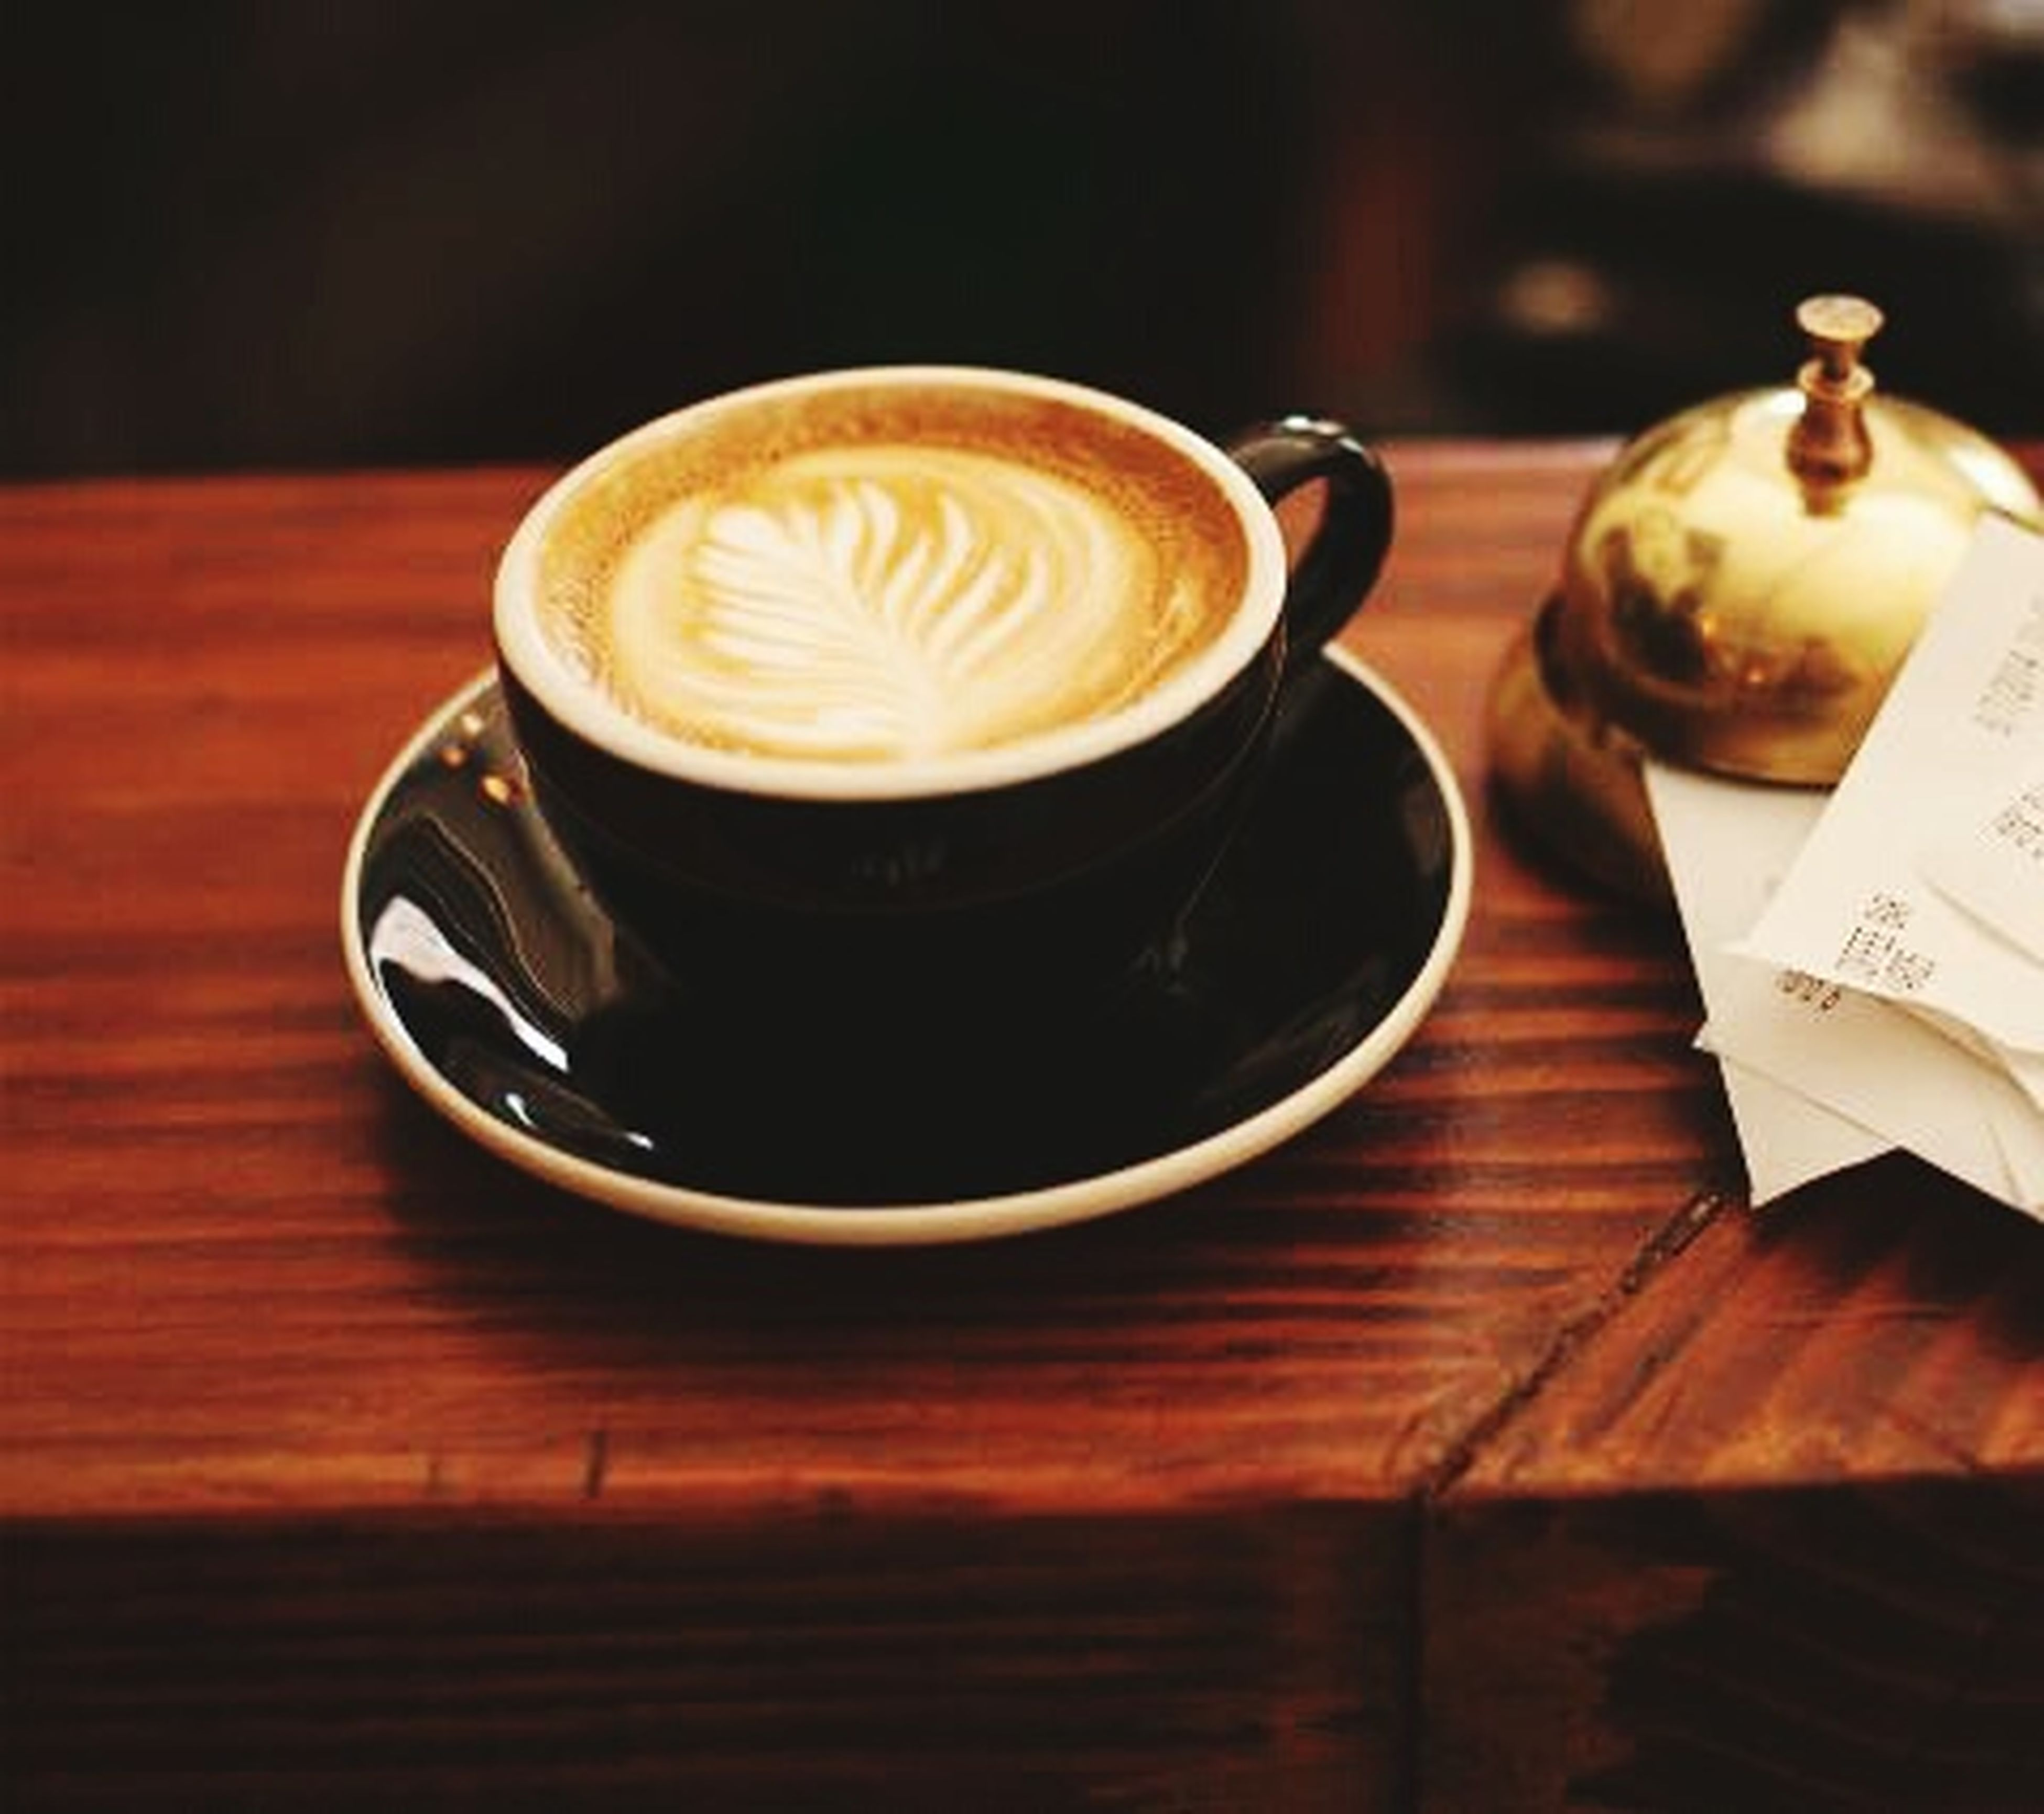 drink, coffee cup, refreshment, food and drink, table, saucer, coffee - drink, frothy drink, indoors, cappuccino, freshness, coffee, froth art, still life, cup, close-up, beverage, latte, cafe, wood - material